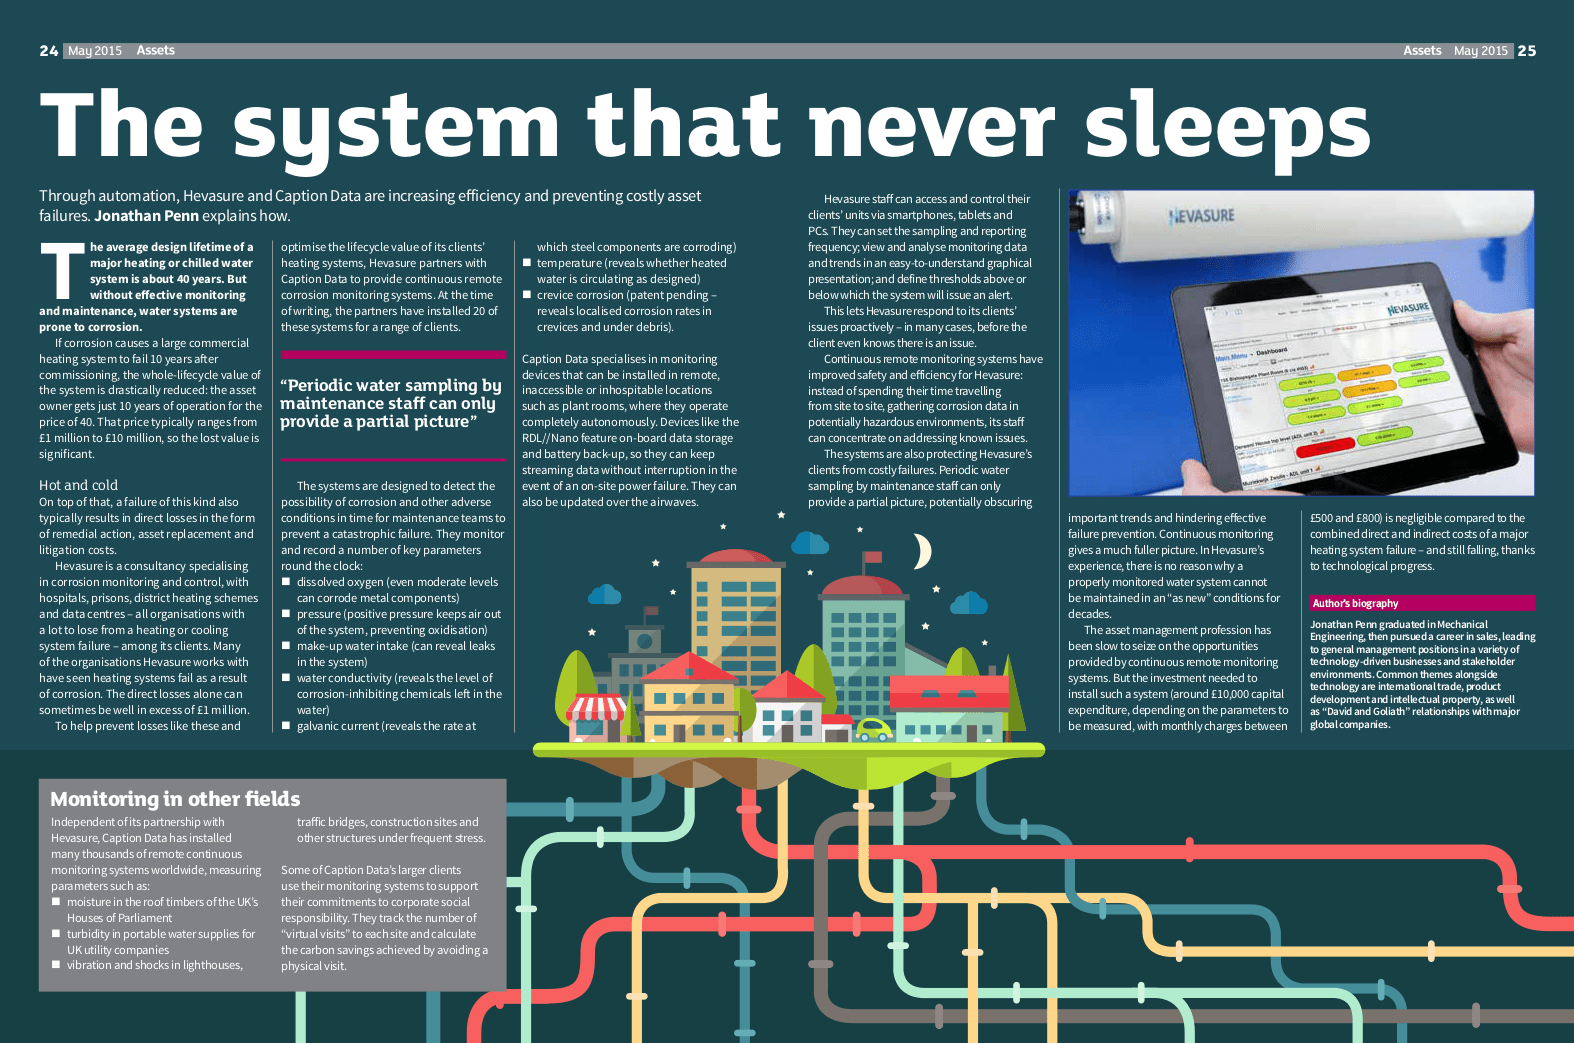 The system that never sleeps IAM article